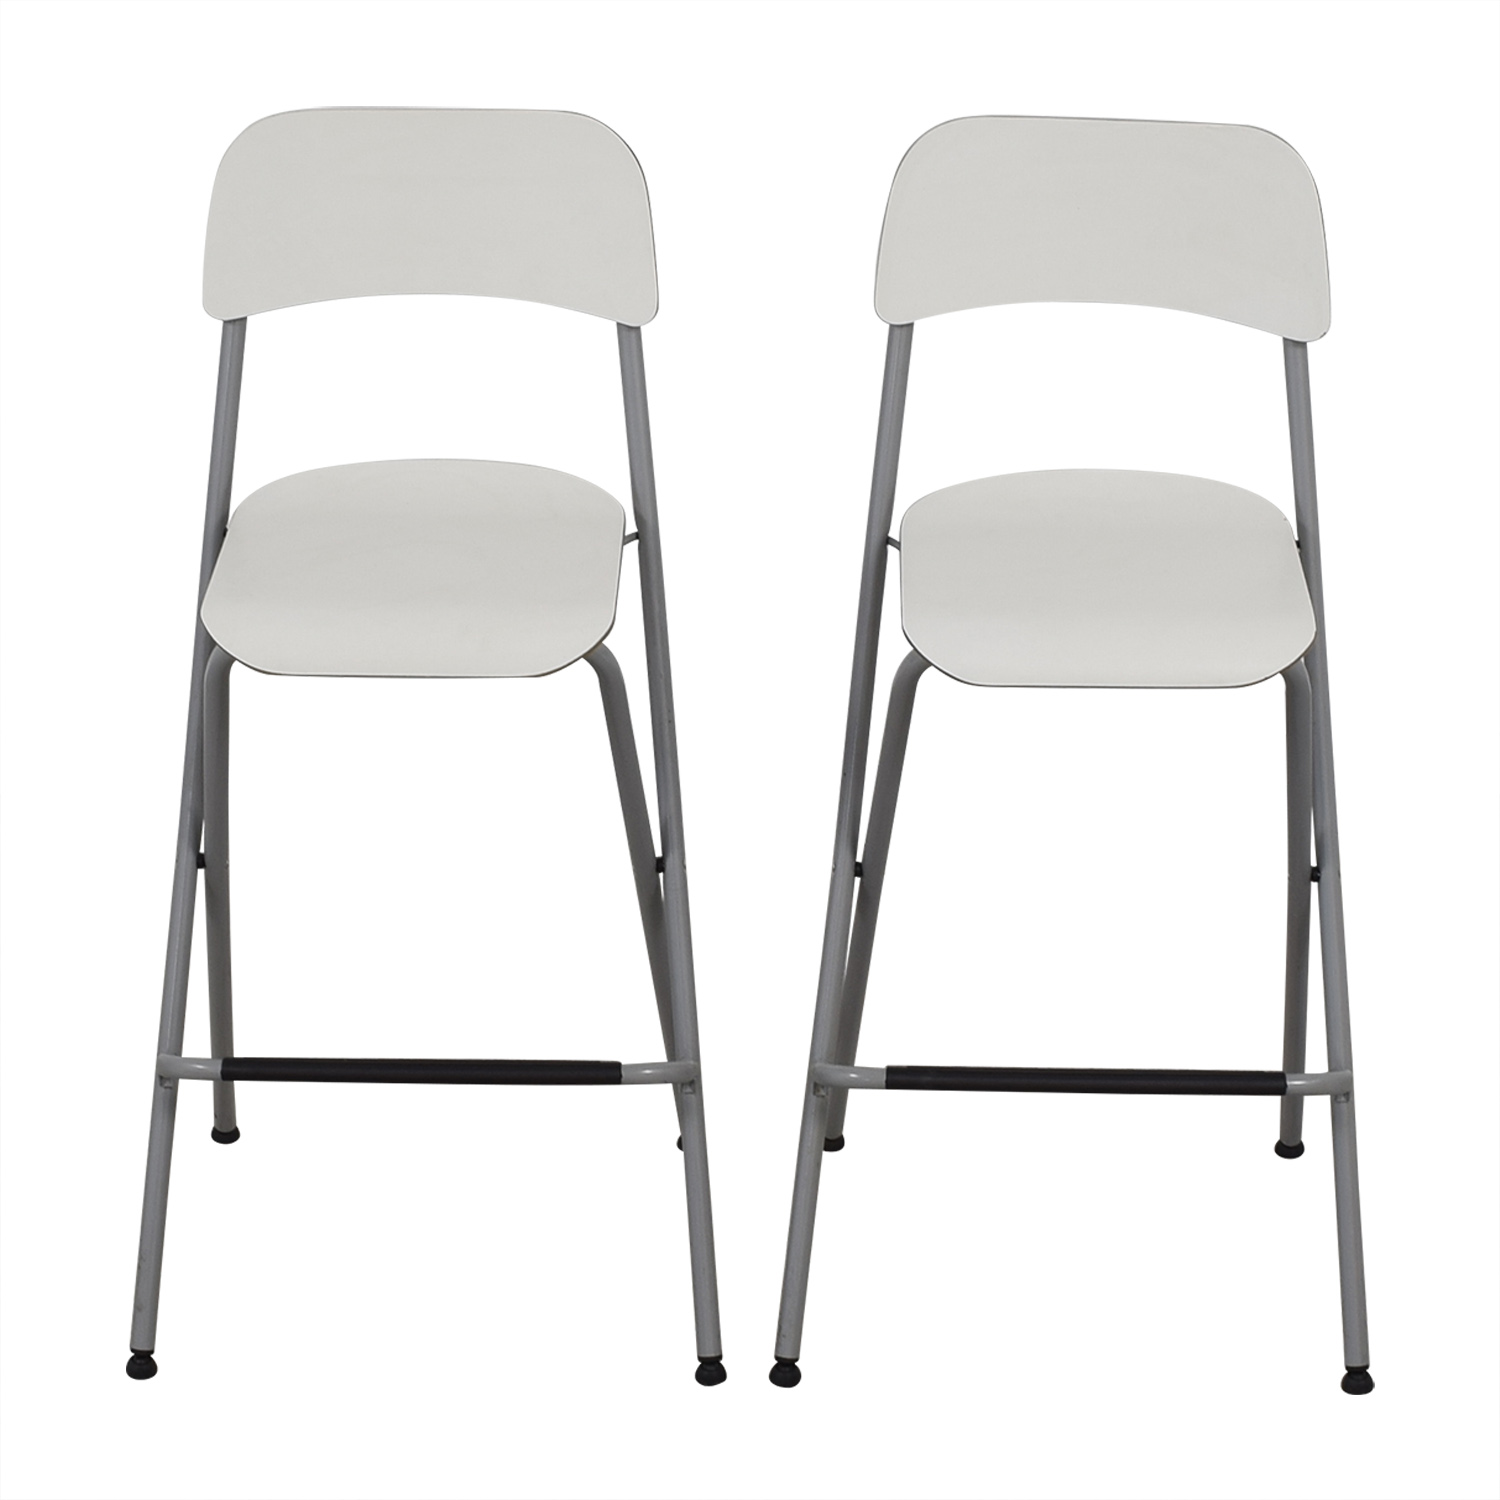 73 off ikea ikea white bar stools chairs. Black Bedroom Furniture Sets. Home Design Ideas